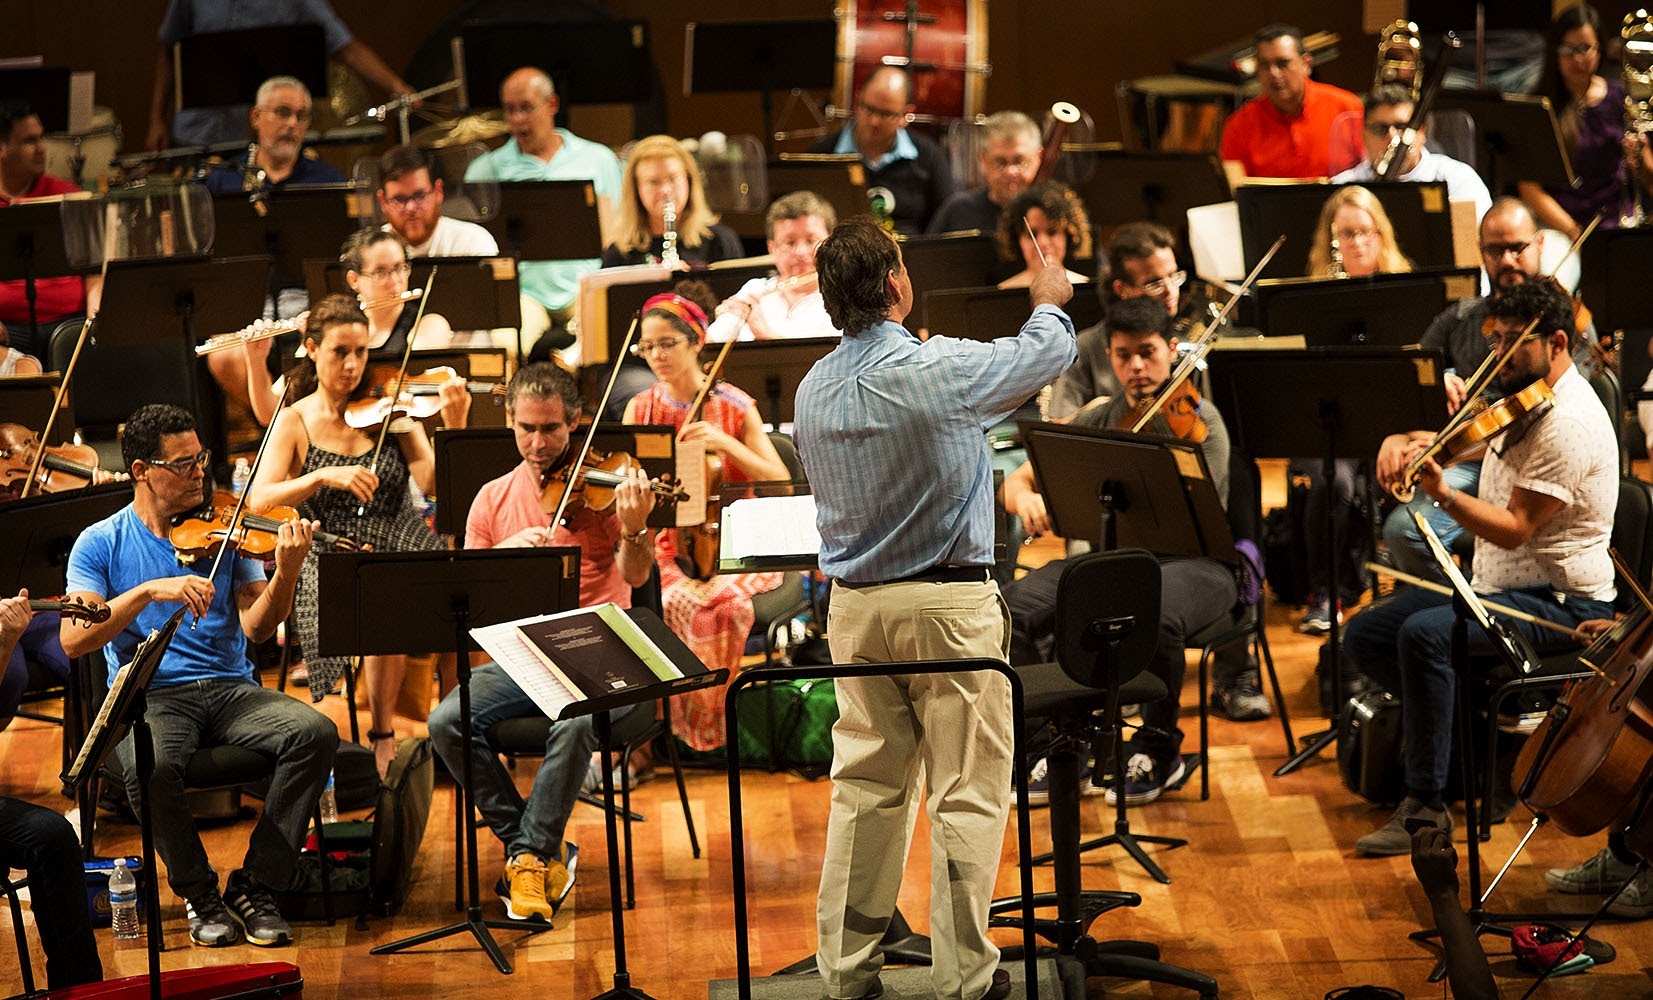 Maximiano Valdés, music director of the Puerto Rico Symphony Orchestra, conducts the symphony during a rehearsal. (Jesse Costa/WBUR)